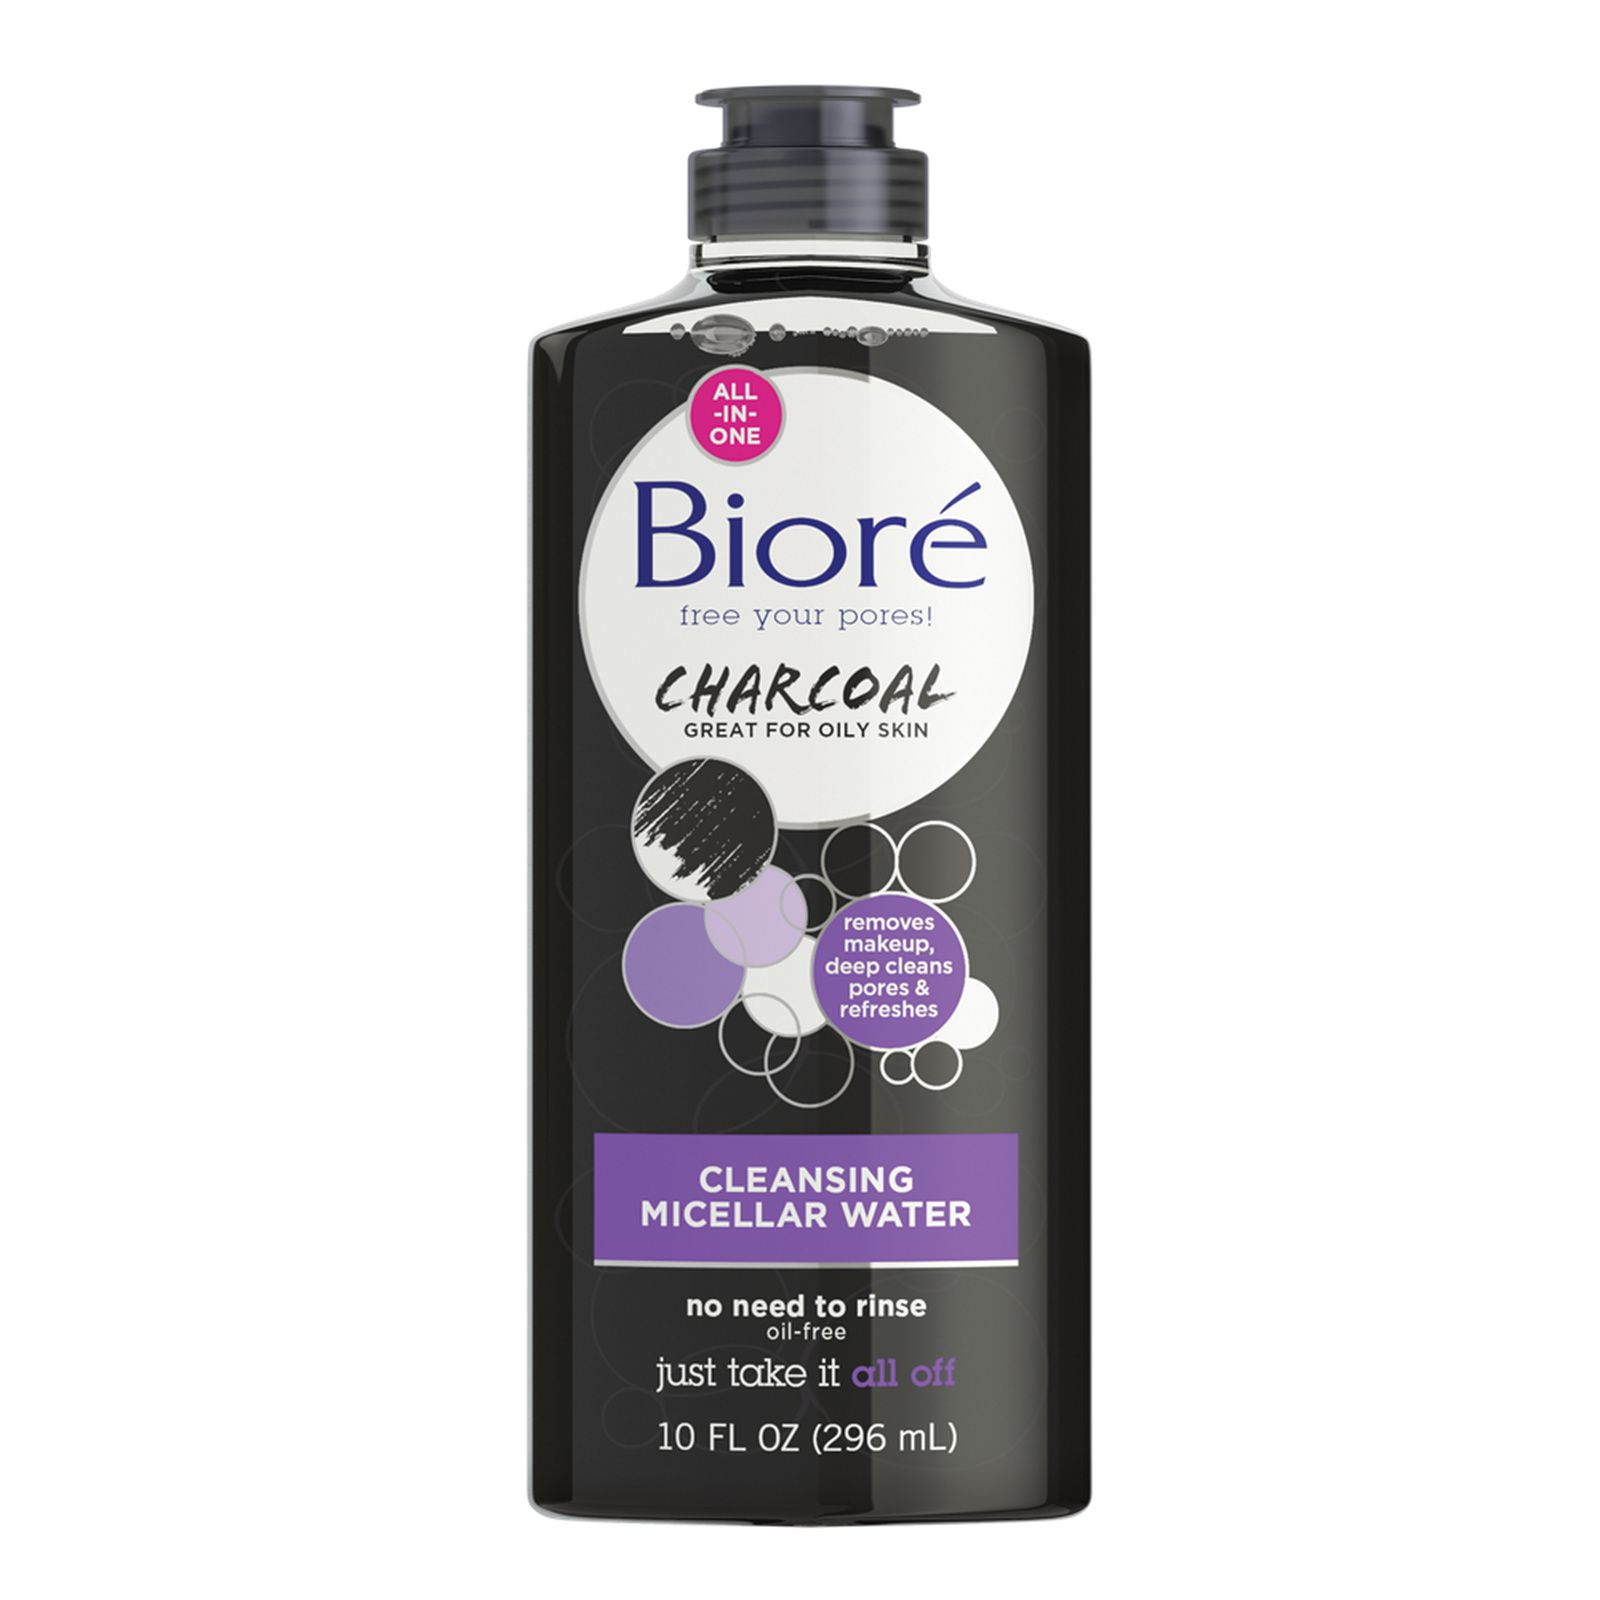 Charcoal Cleansing Micellar Water BIORÉ